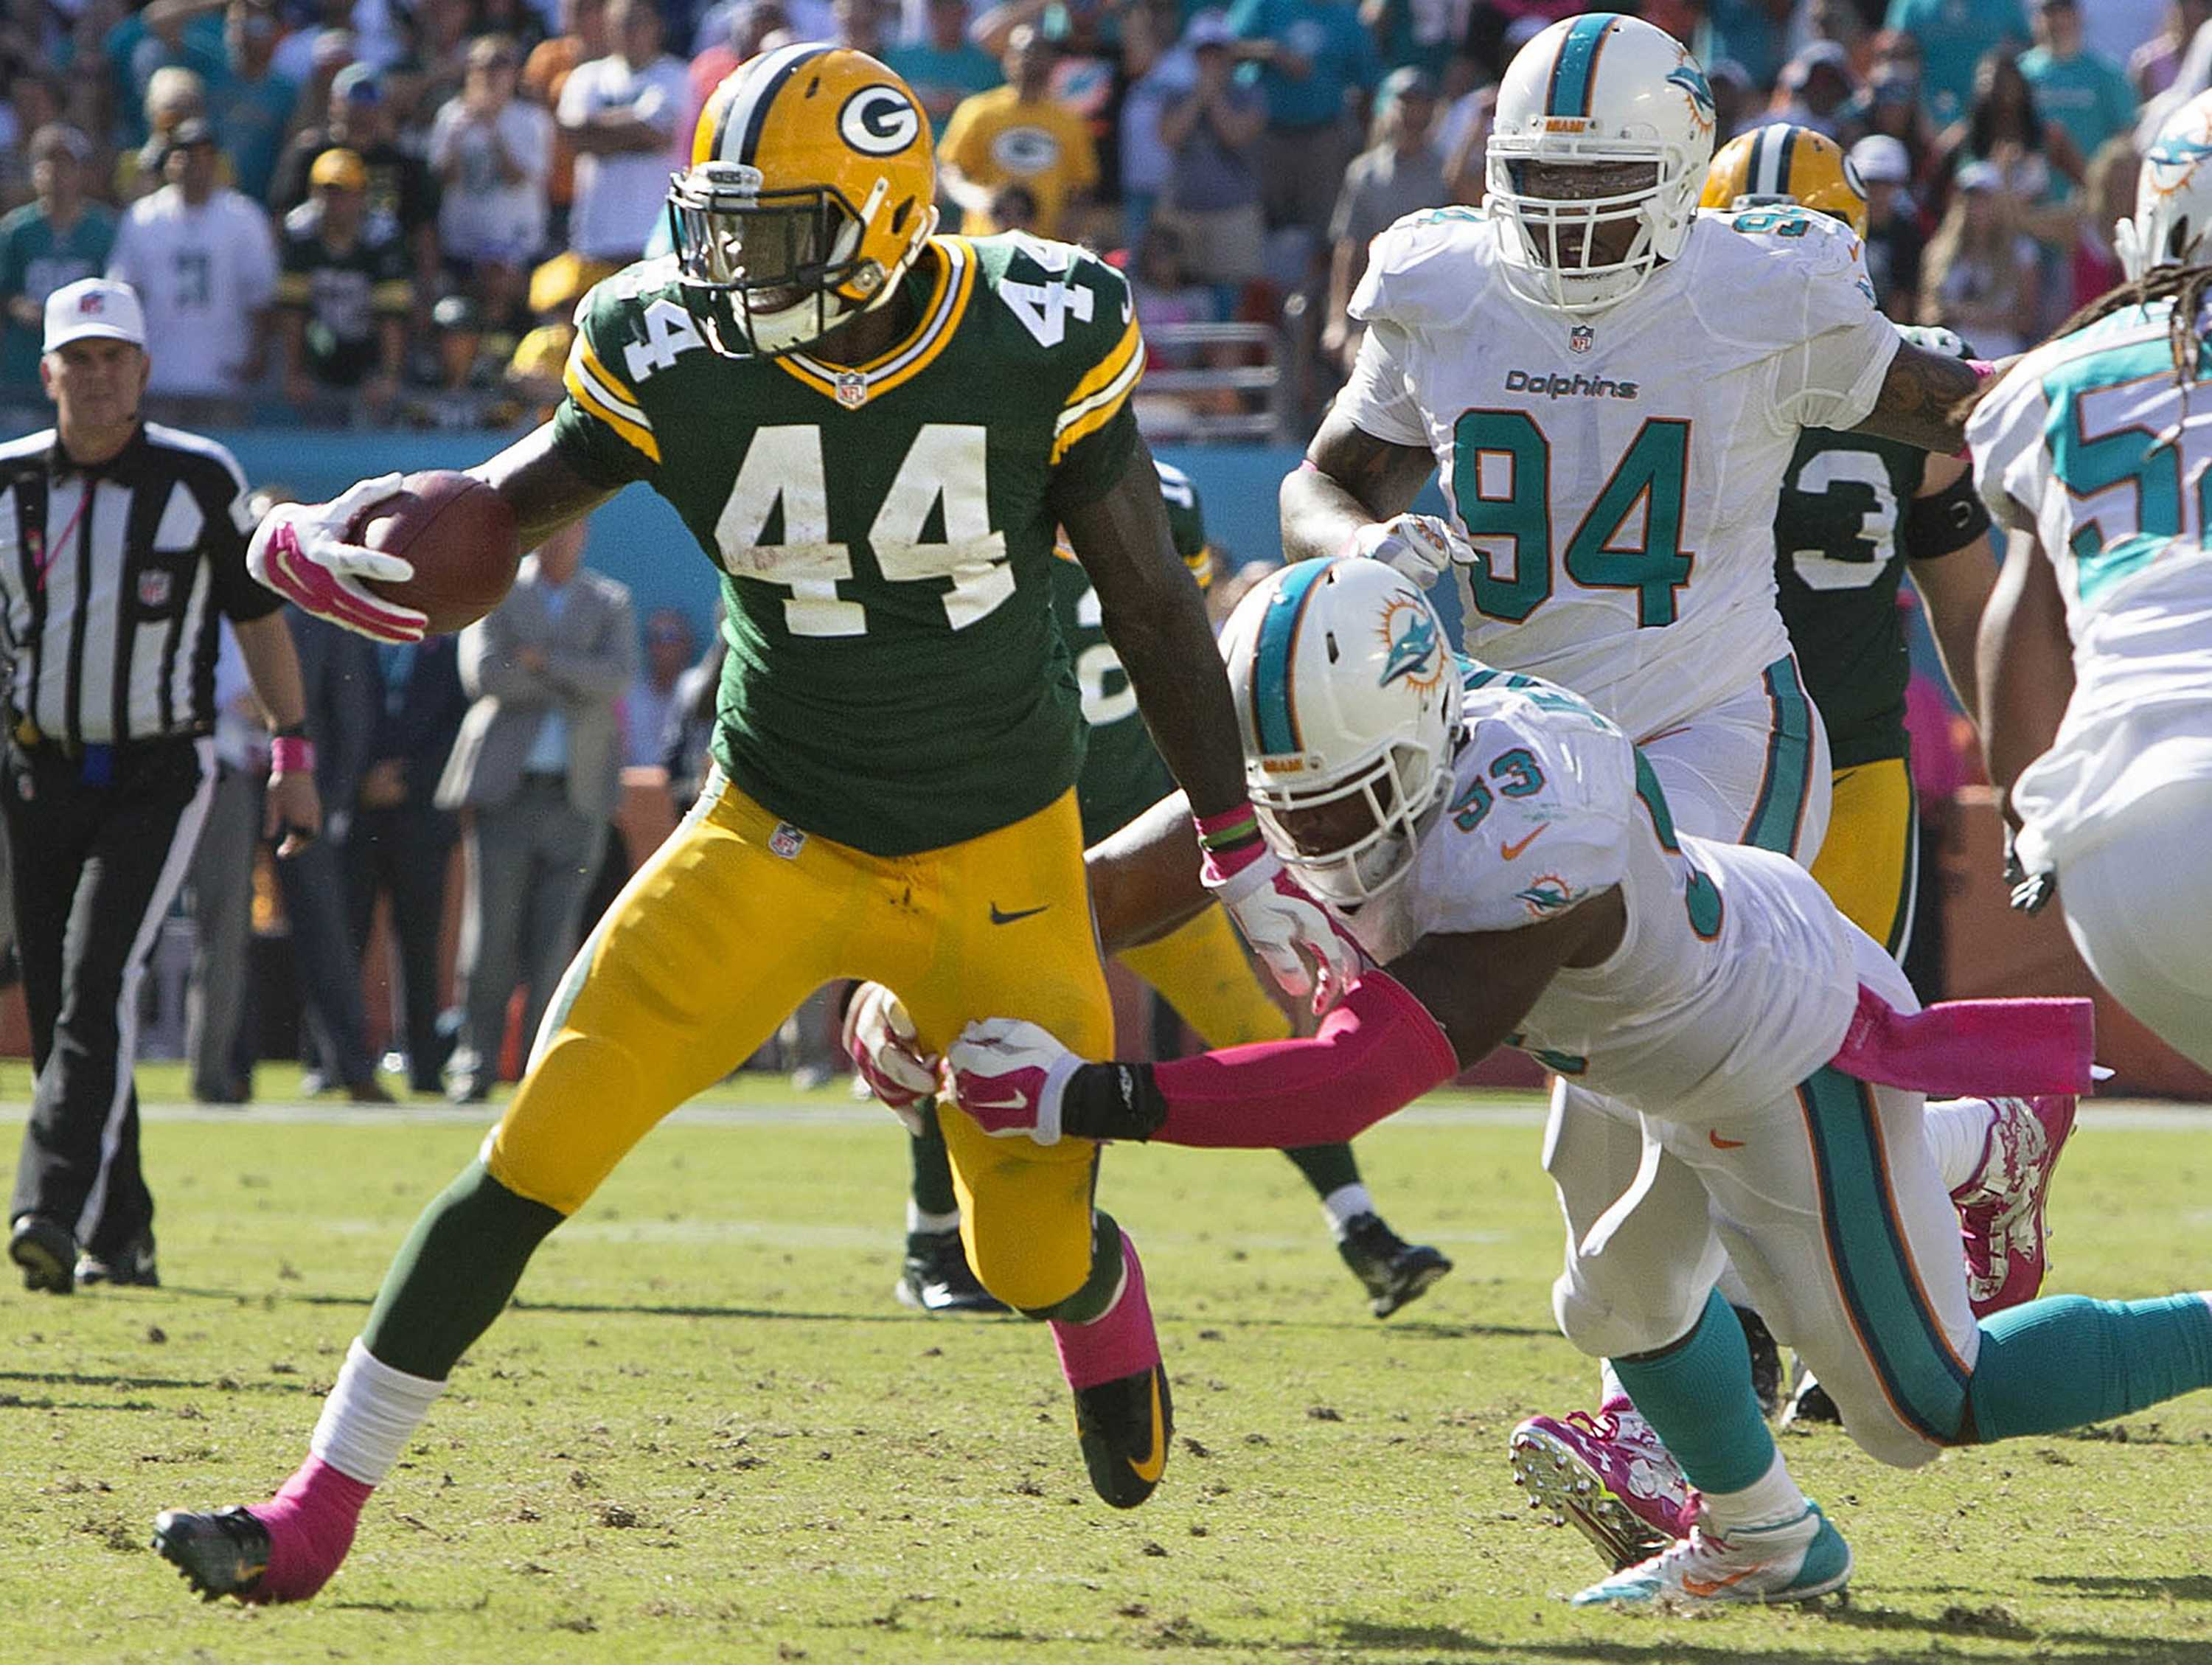 Green Bay Packers running back James Starks is among this week's Fantasy Football picks. Photo Courtesy of Tribune News Service